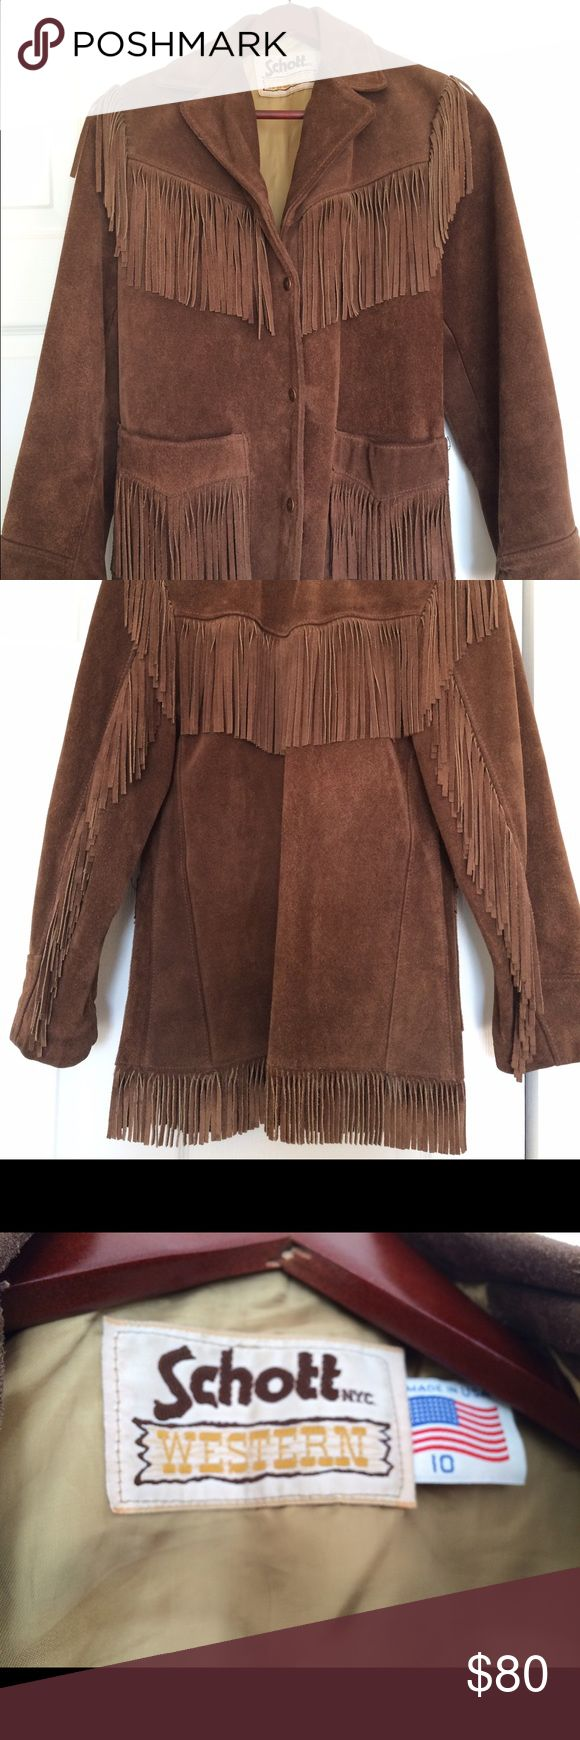 Vintage Fringed Suede Jacket Vintage brown suede jacket with fringe. HEAVY, substantial and well made- excellent condition schott Jackets & Coats